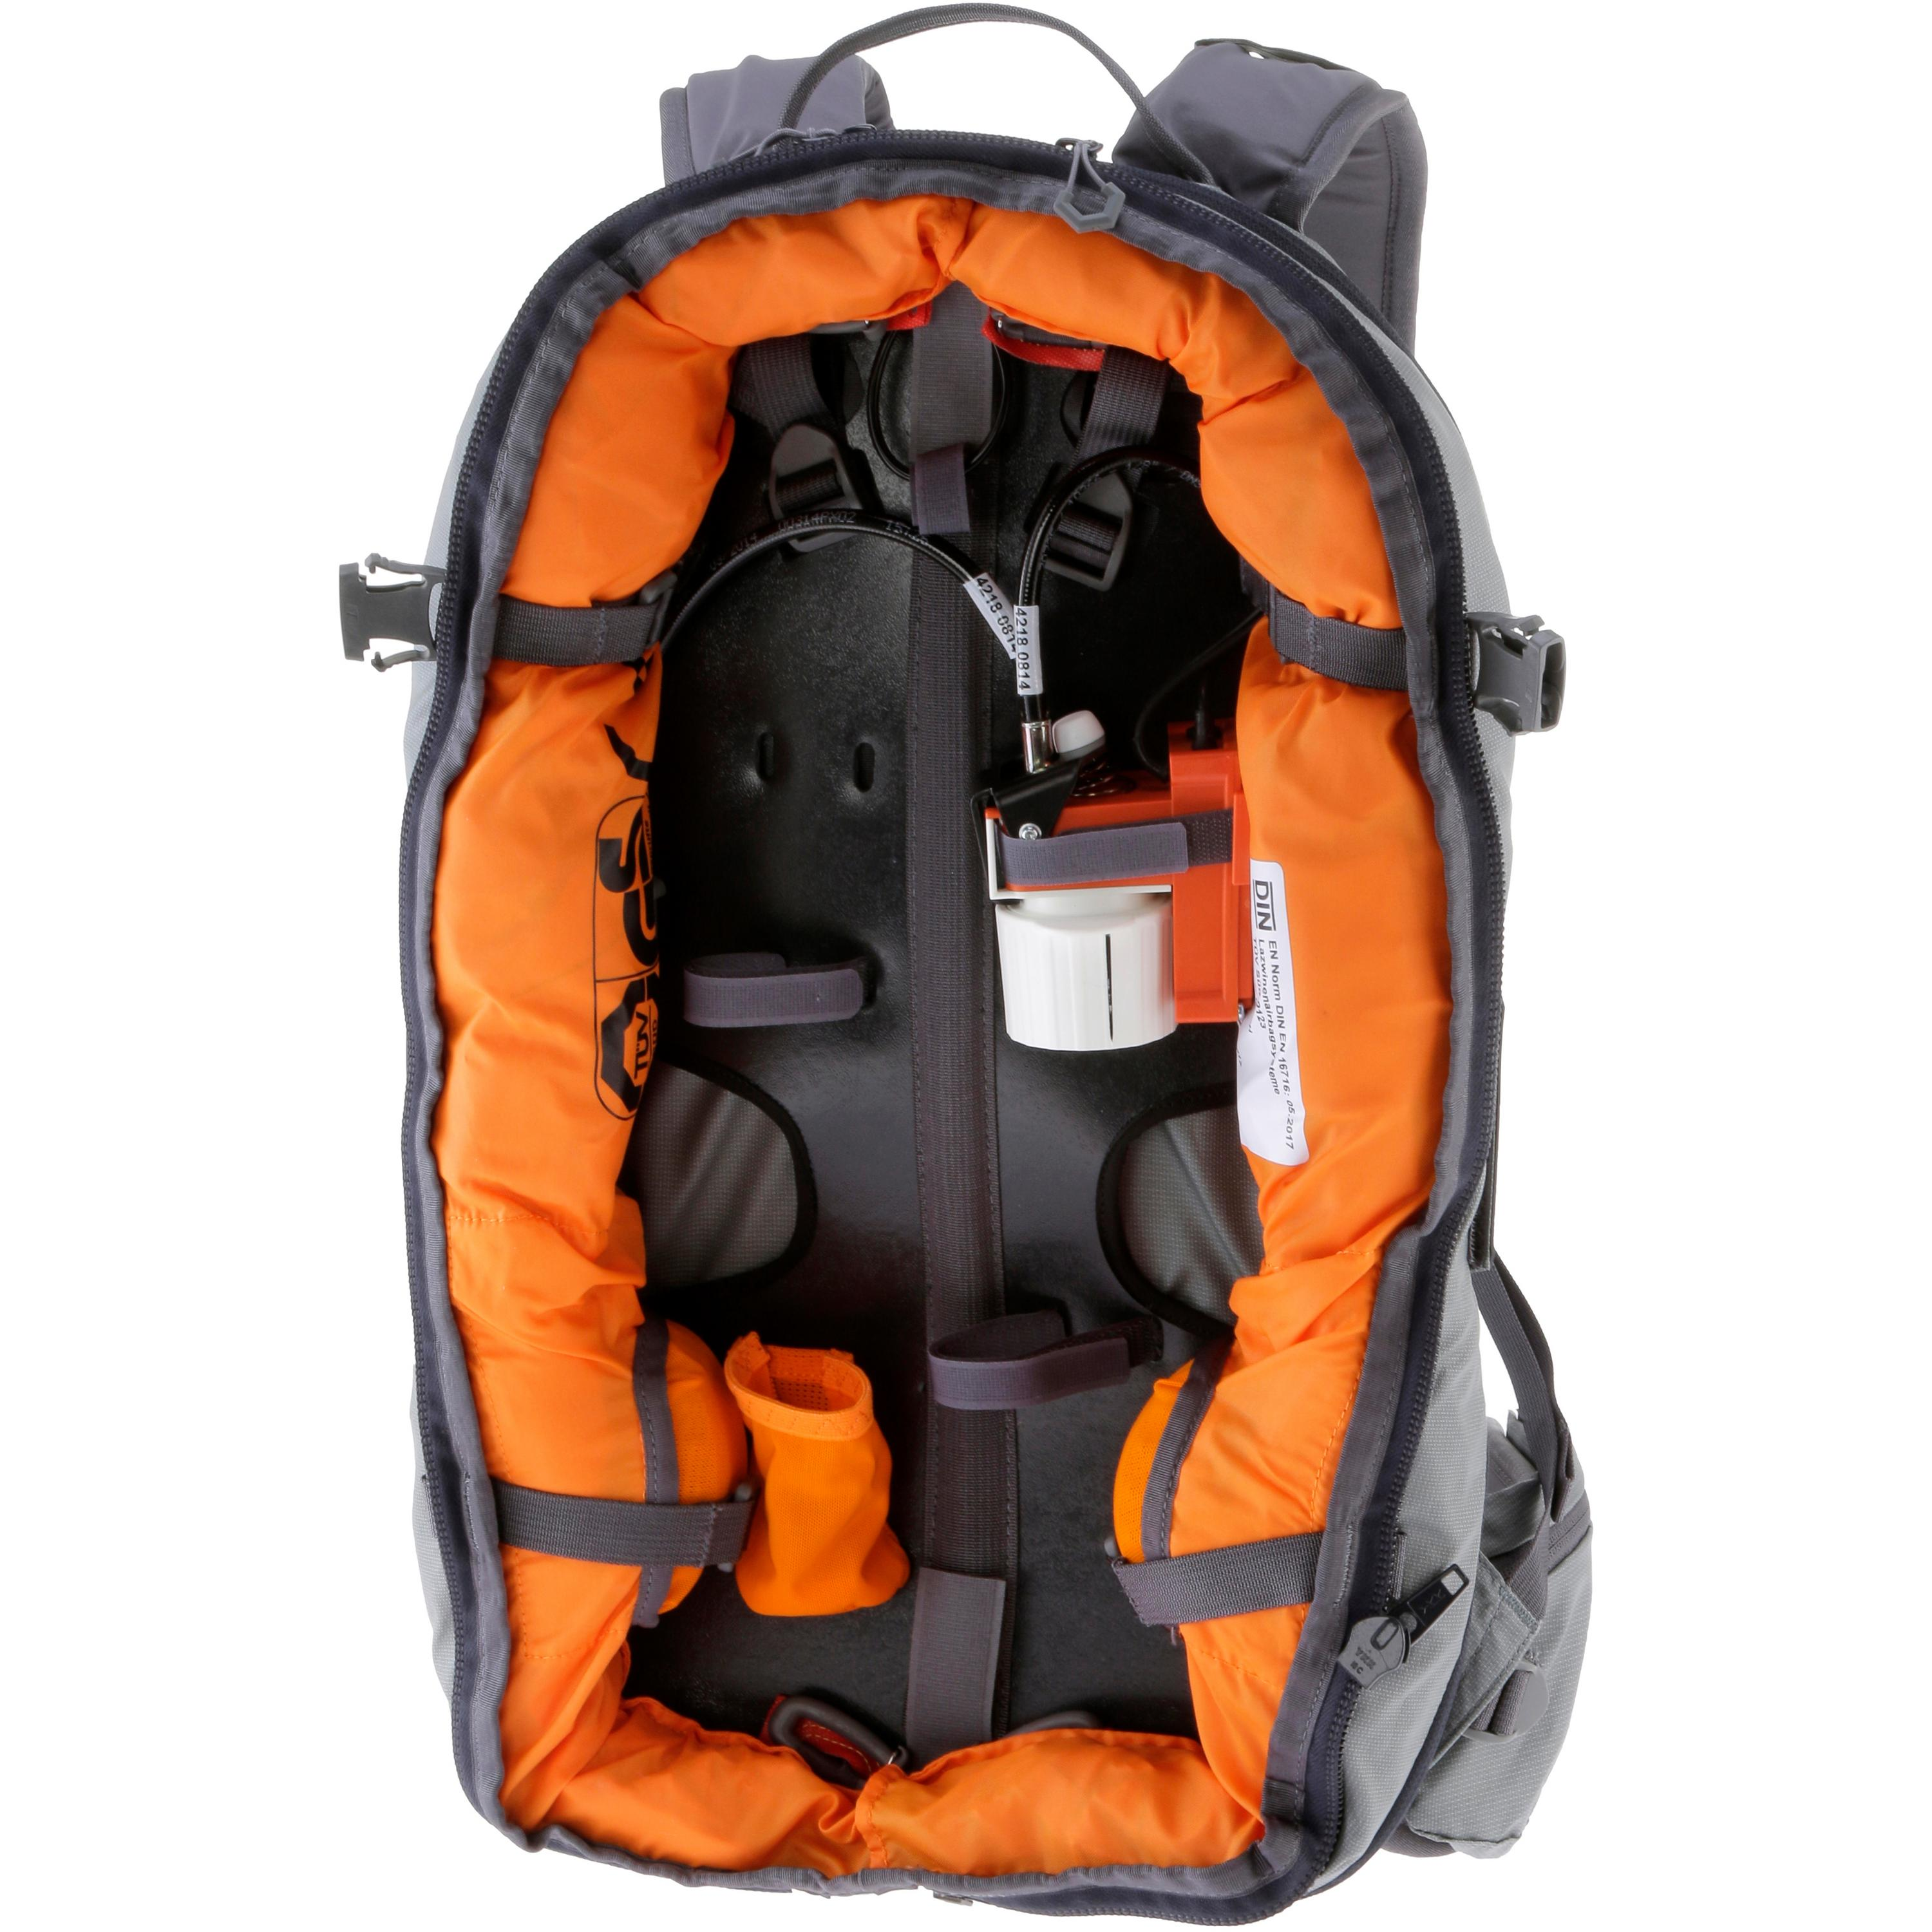 Image of ABS P.RIDE compact Base Unit Lawinenrucksack Kinder